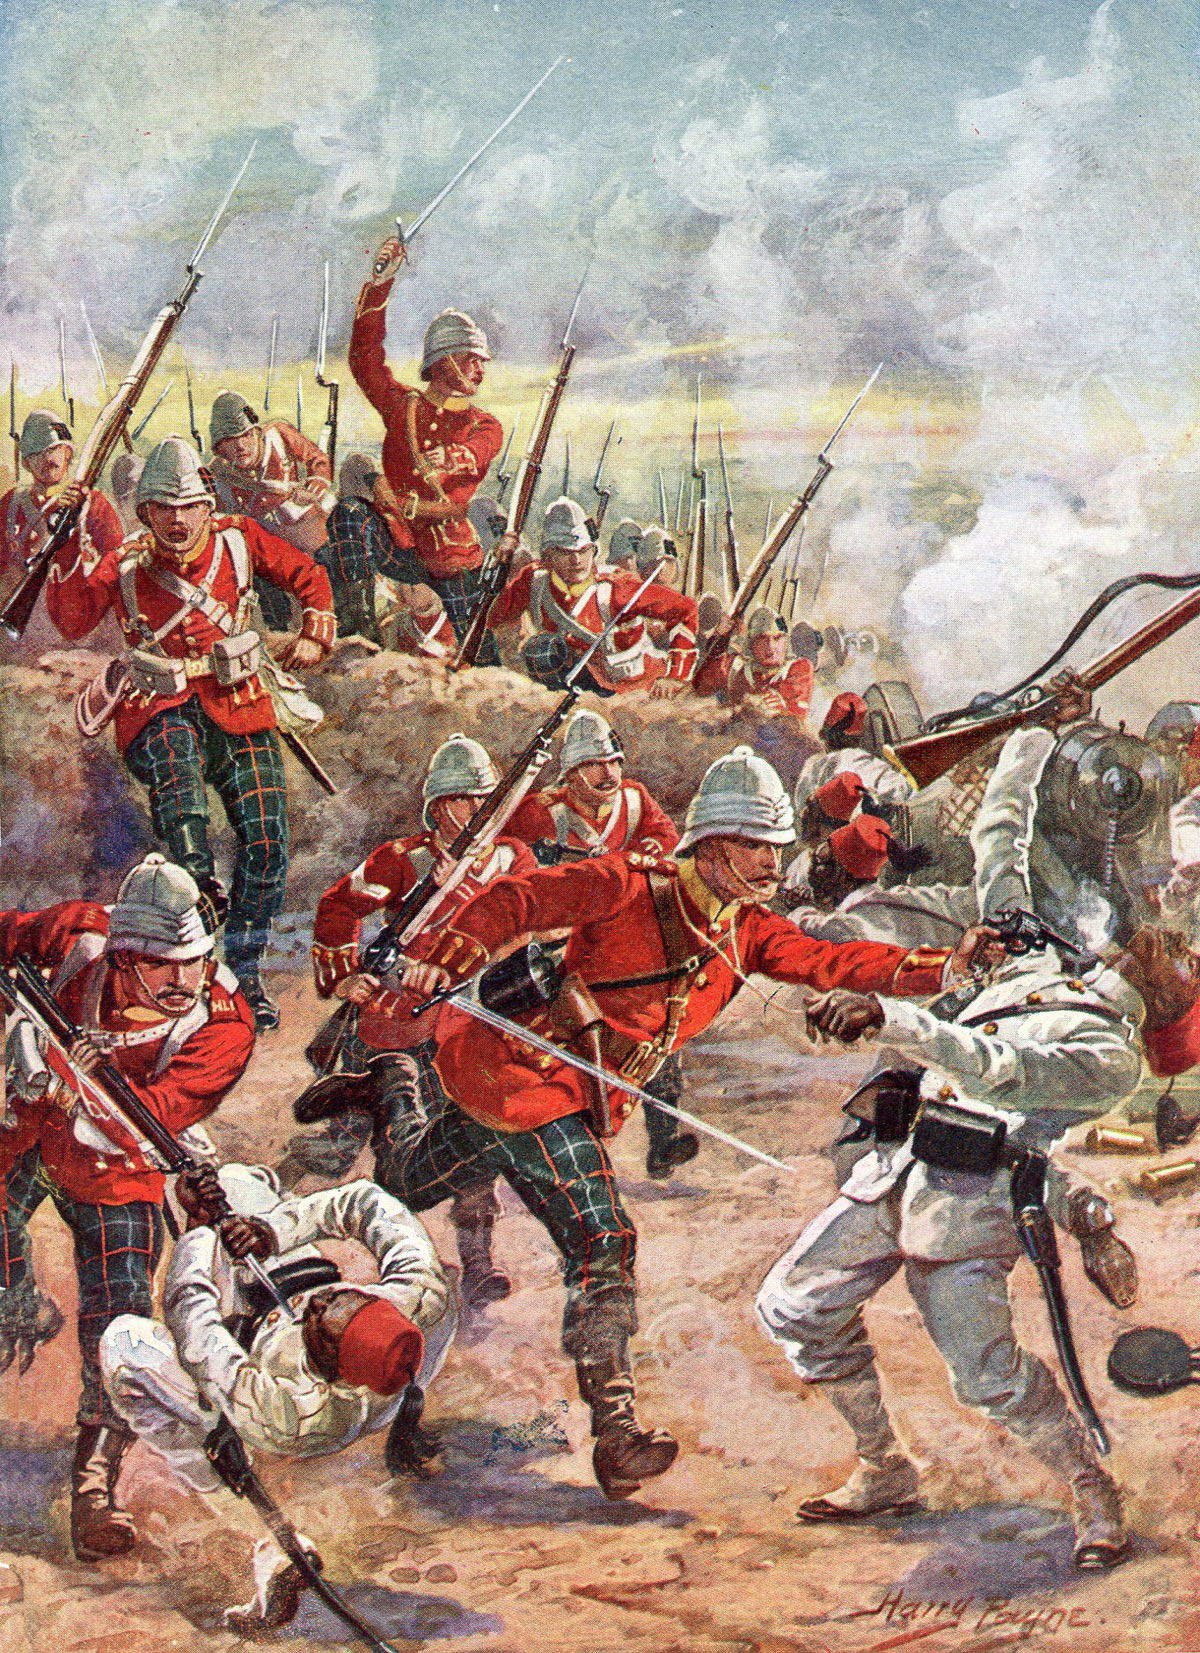 Highland Light Infantry assaulting the Egyptian entrenchments at the Battle of Tel-el-Kebir on 13th September 1882 in the Egyptian War: picture by Harry Payne